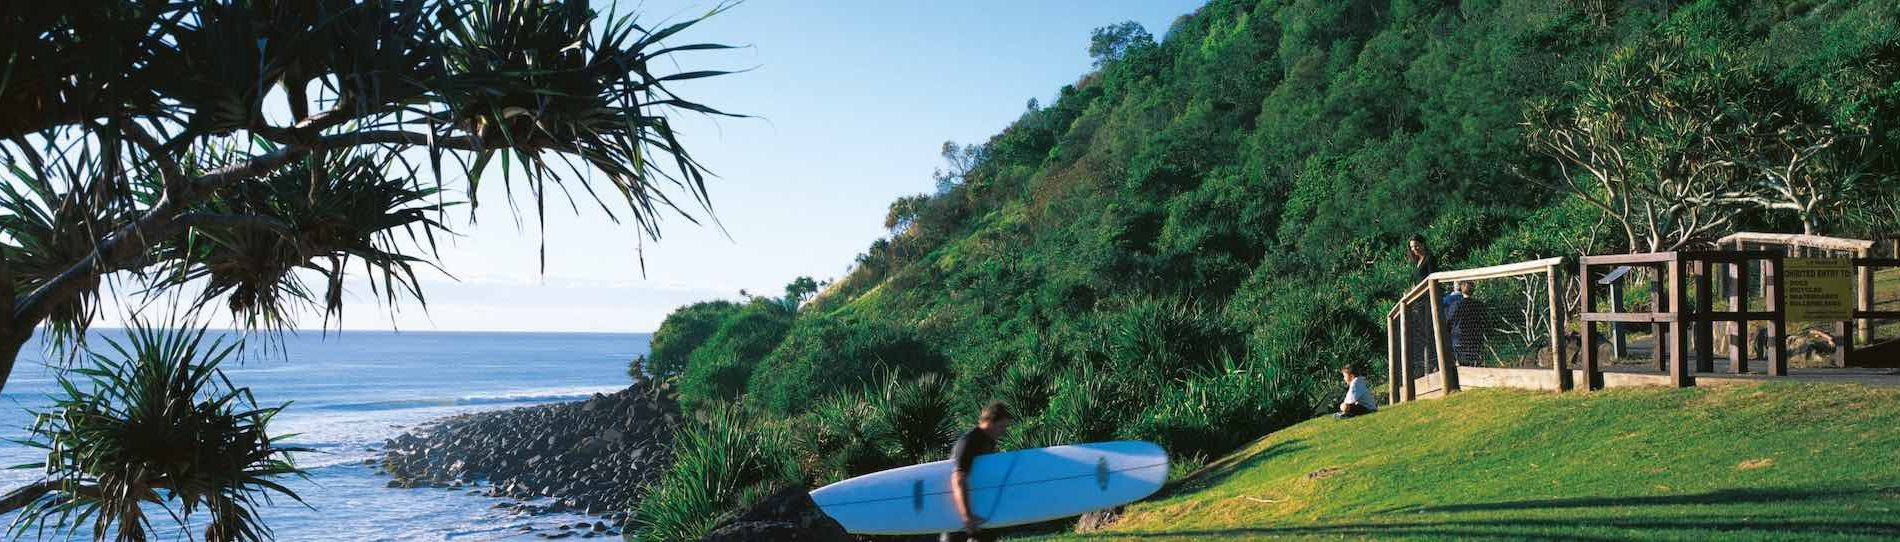 top gold coast things to do burleigh heads